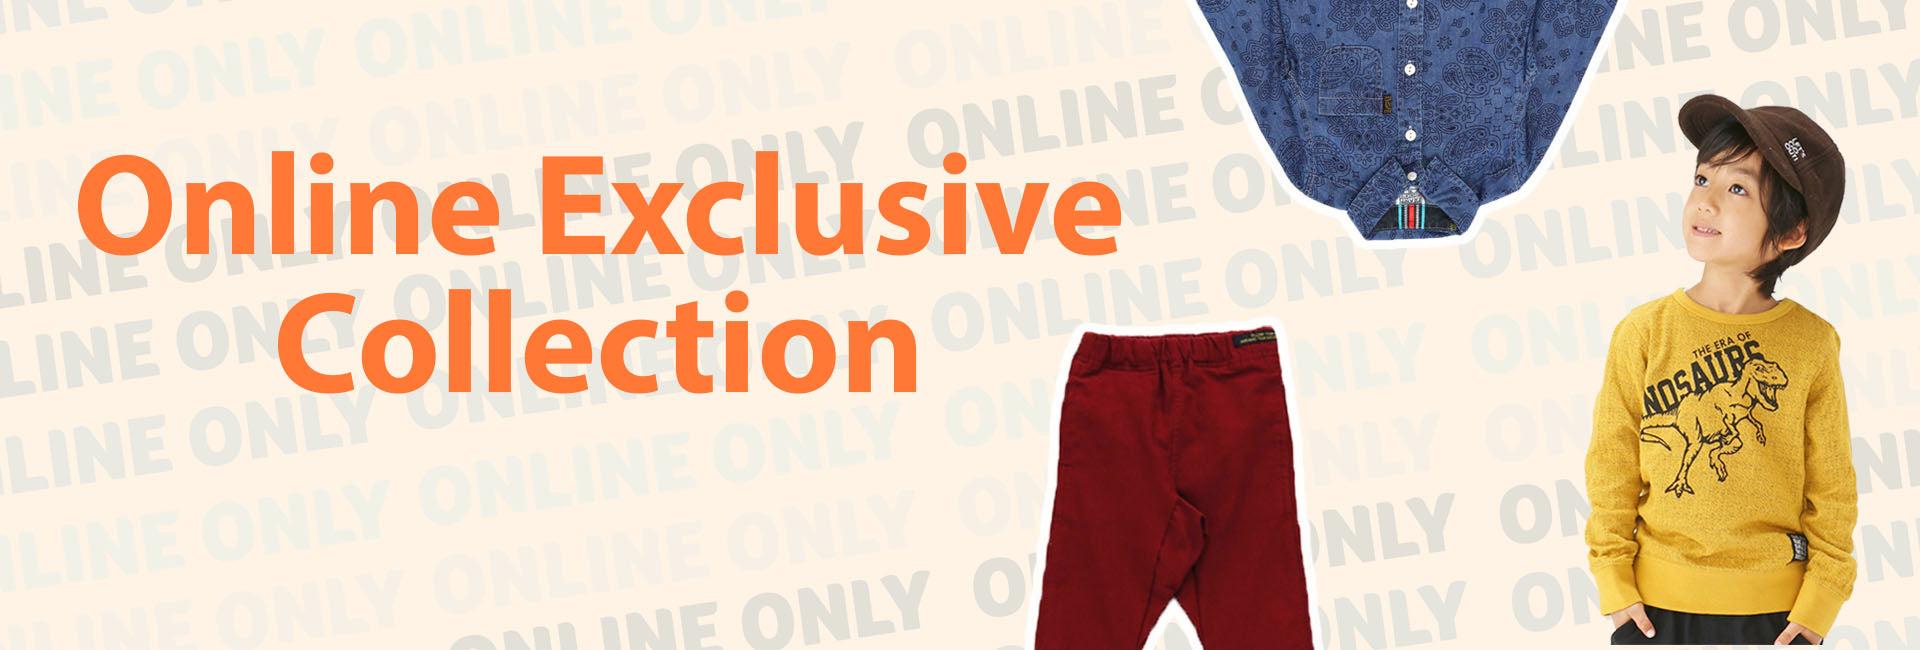 Online Exclusive Collection